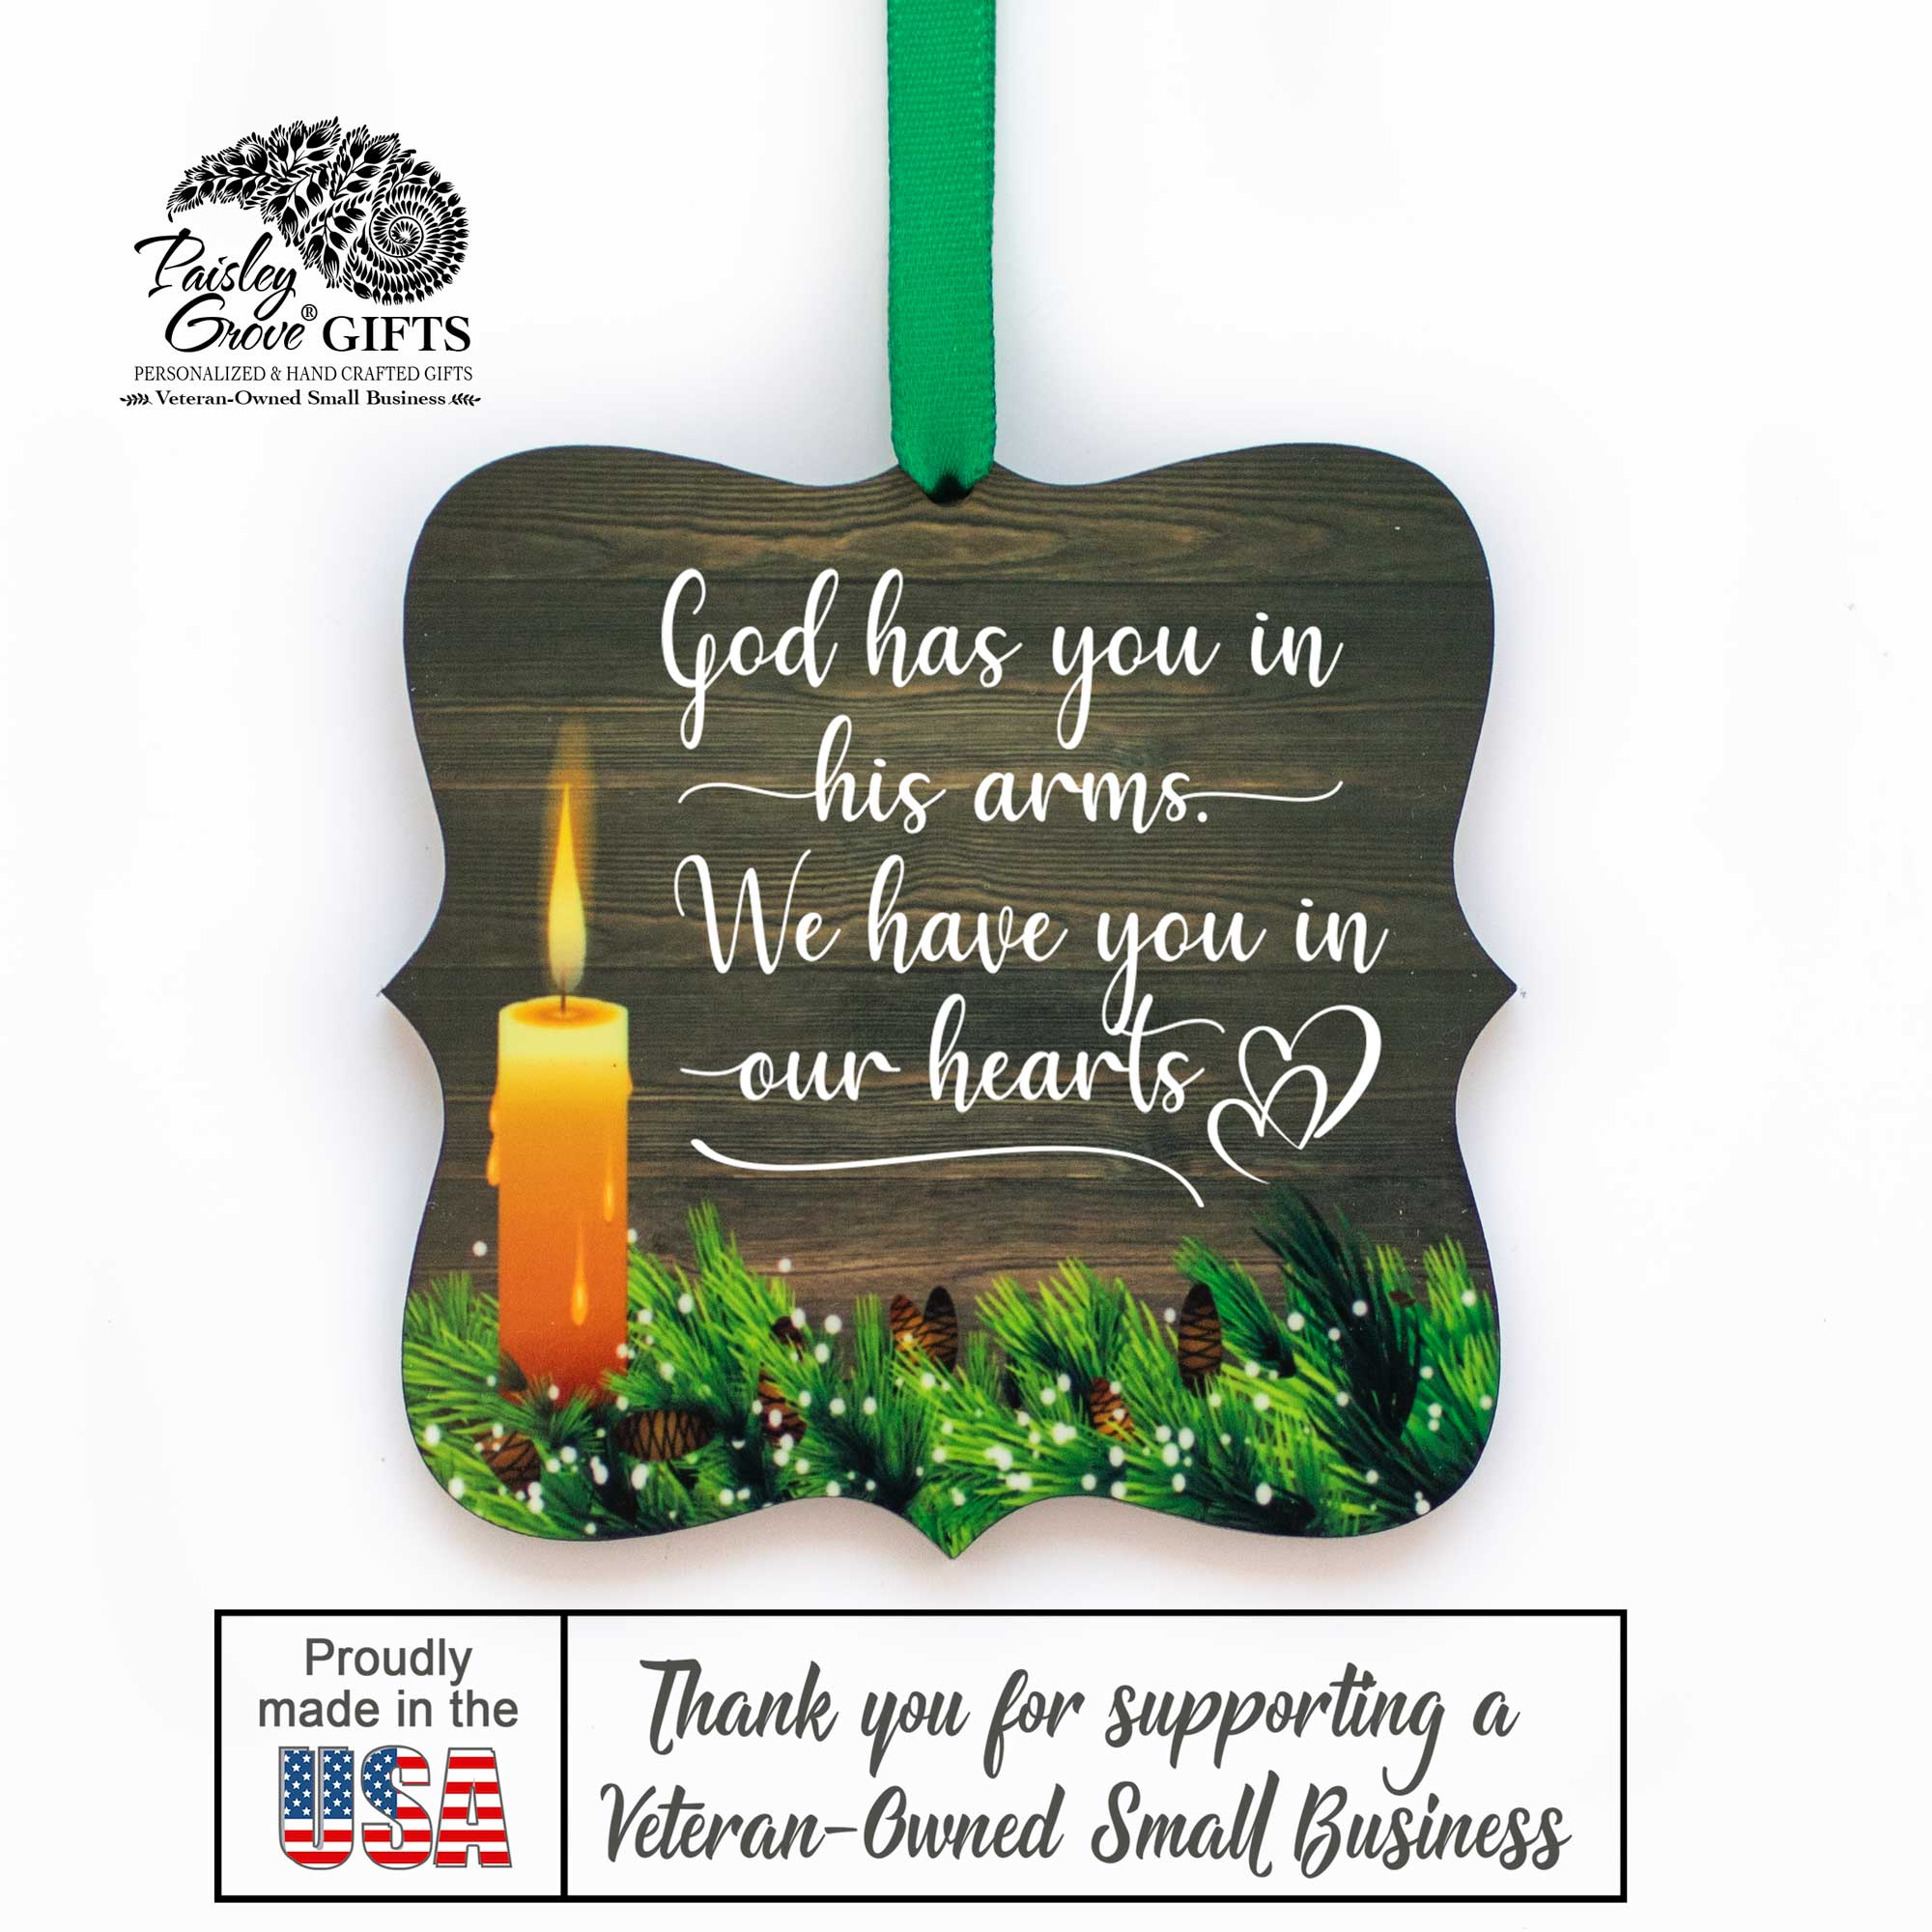 CopyrightPaisleyGroveGIFTS S508c In Loving Memory Christmas Ornament Bereavement Gift Made in the USA